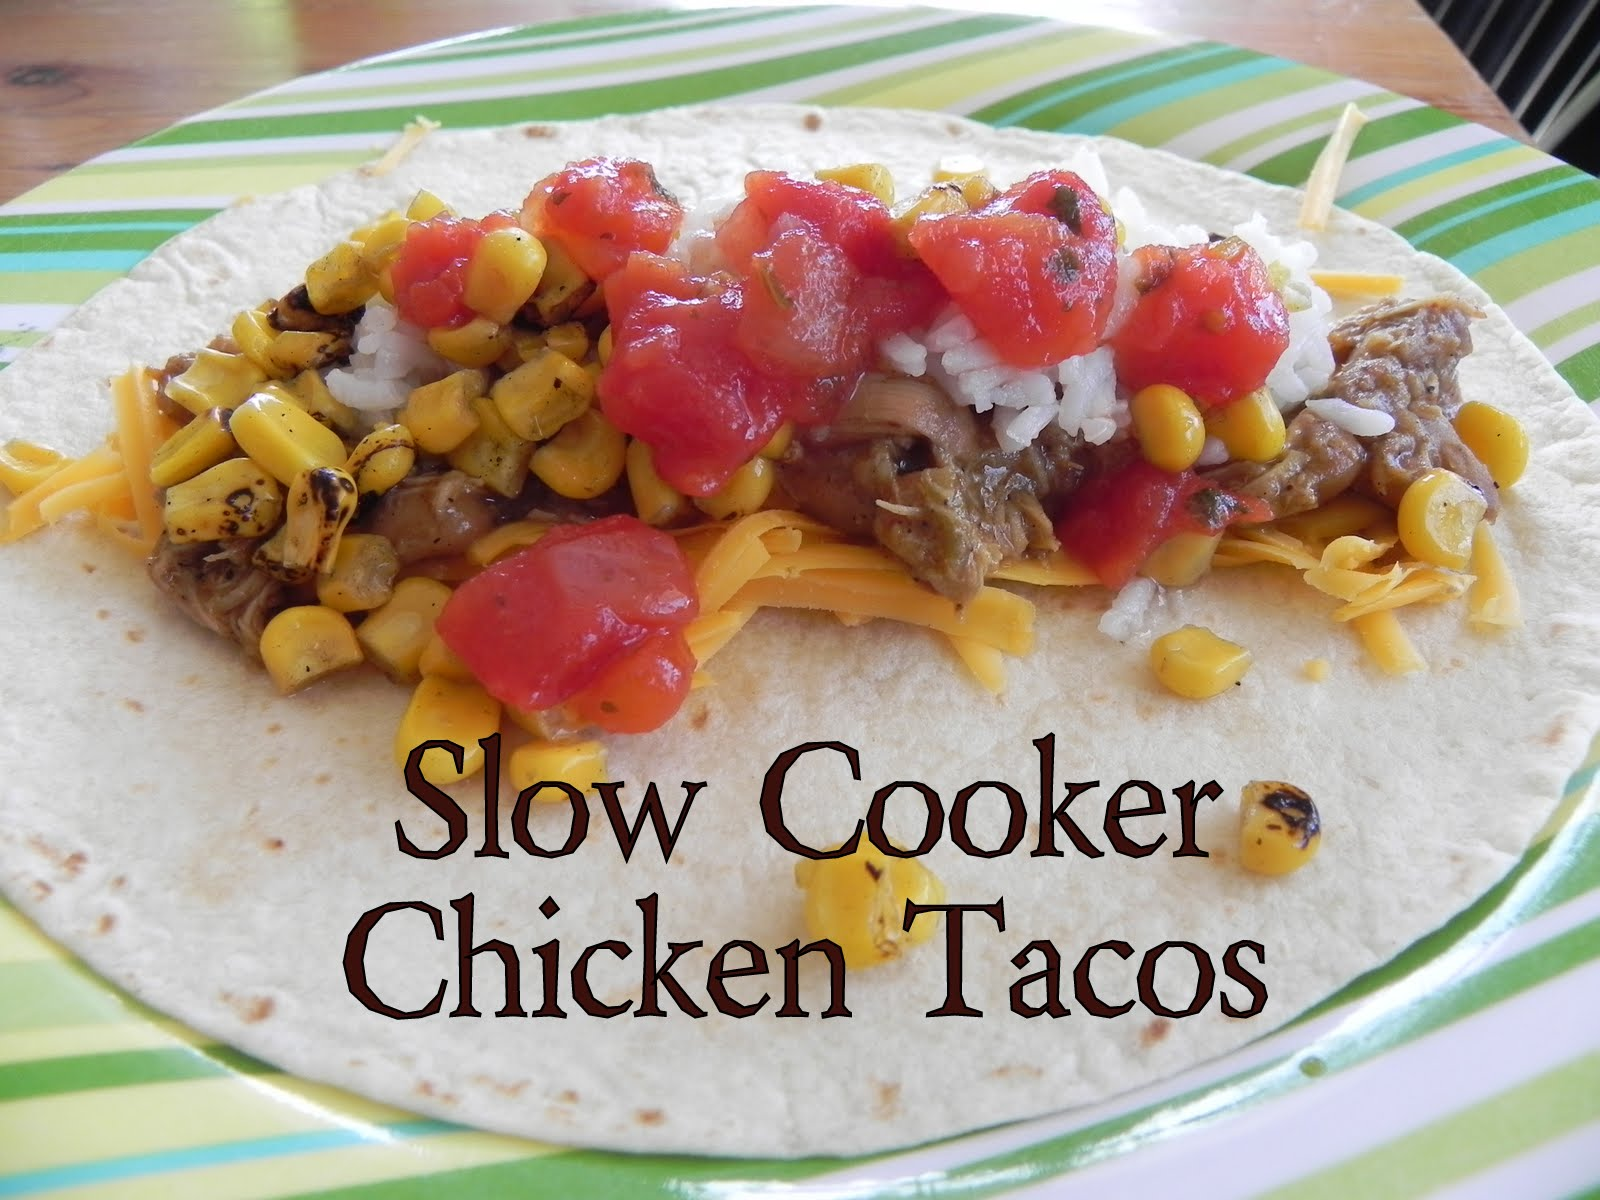 Gift of Simplicity: Slow Cooker Chicken Tacos